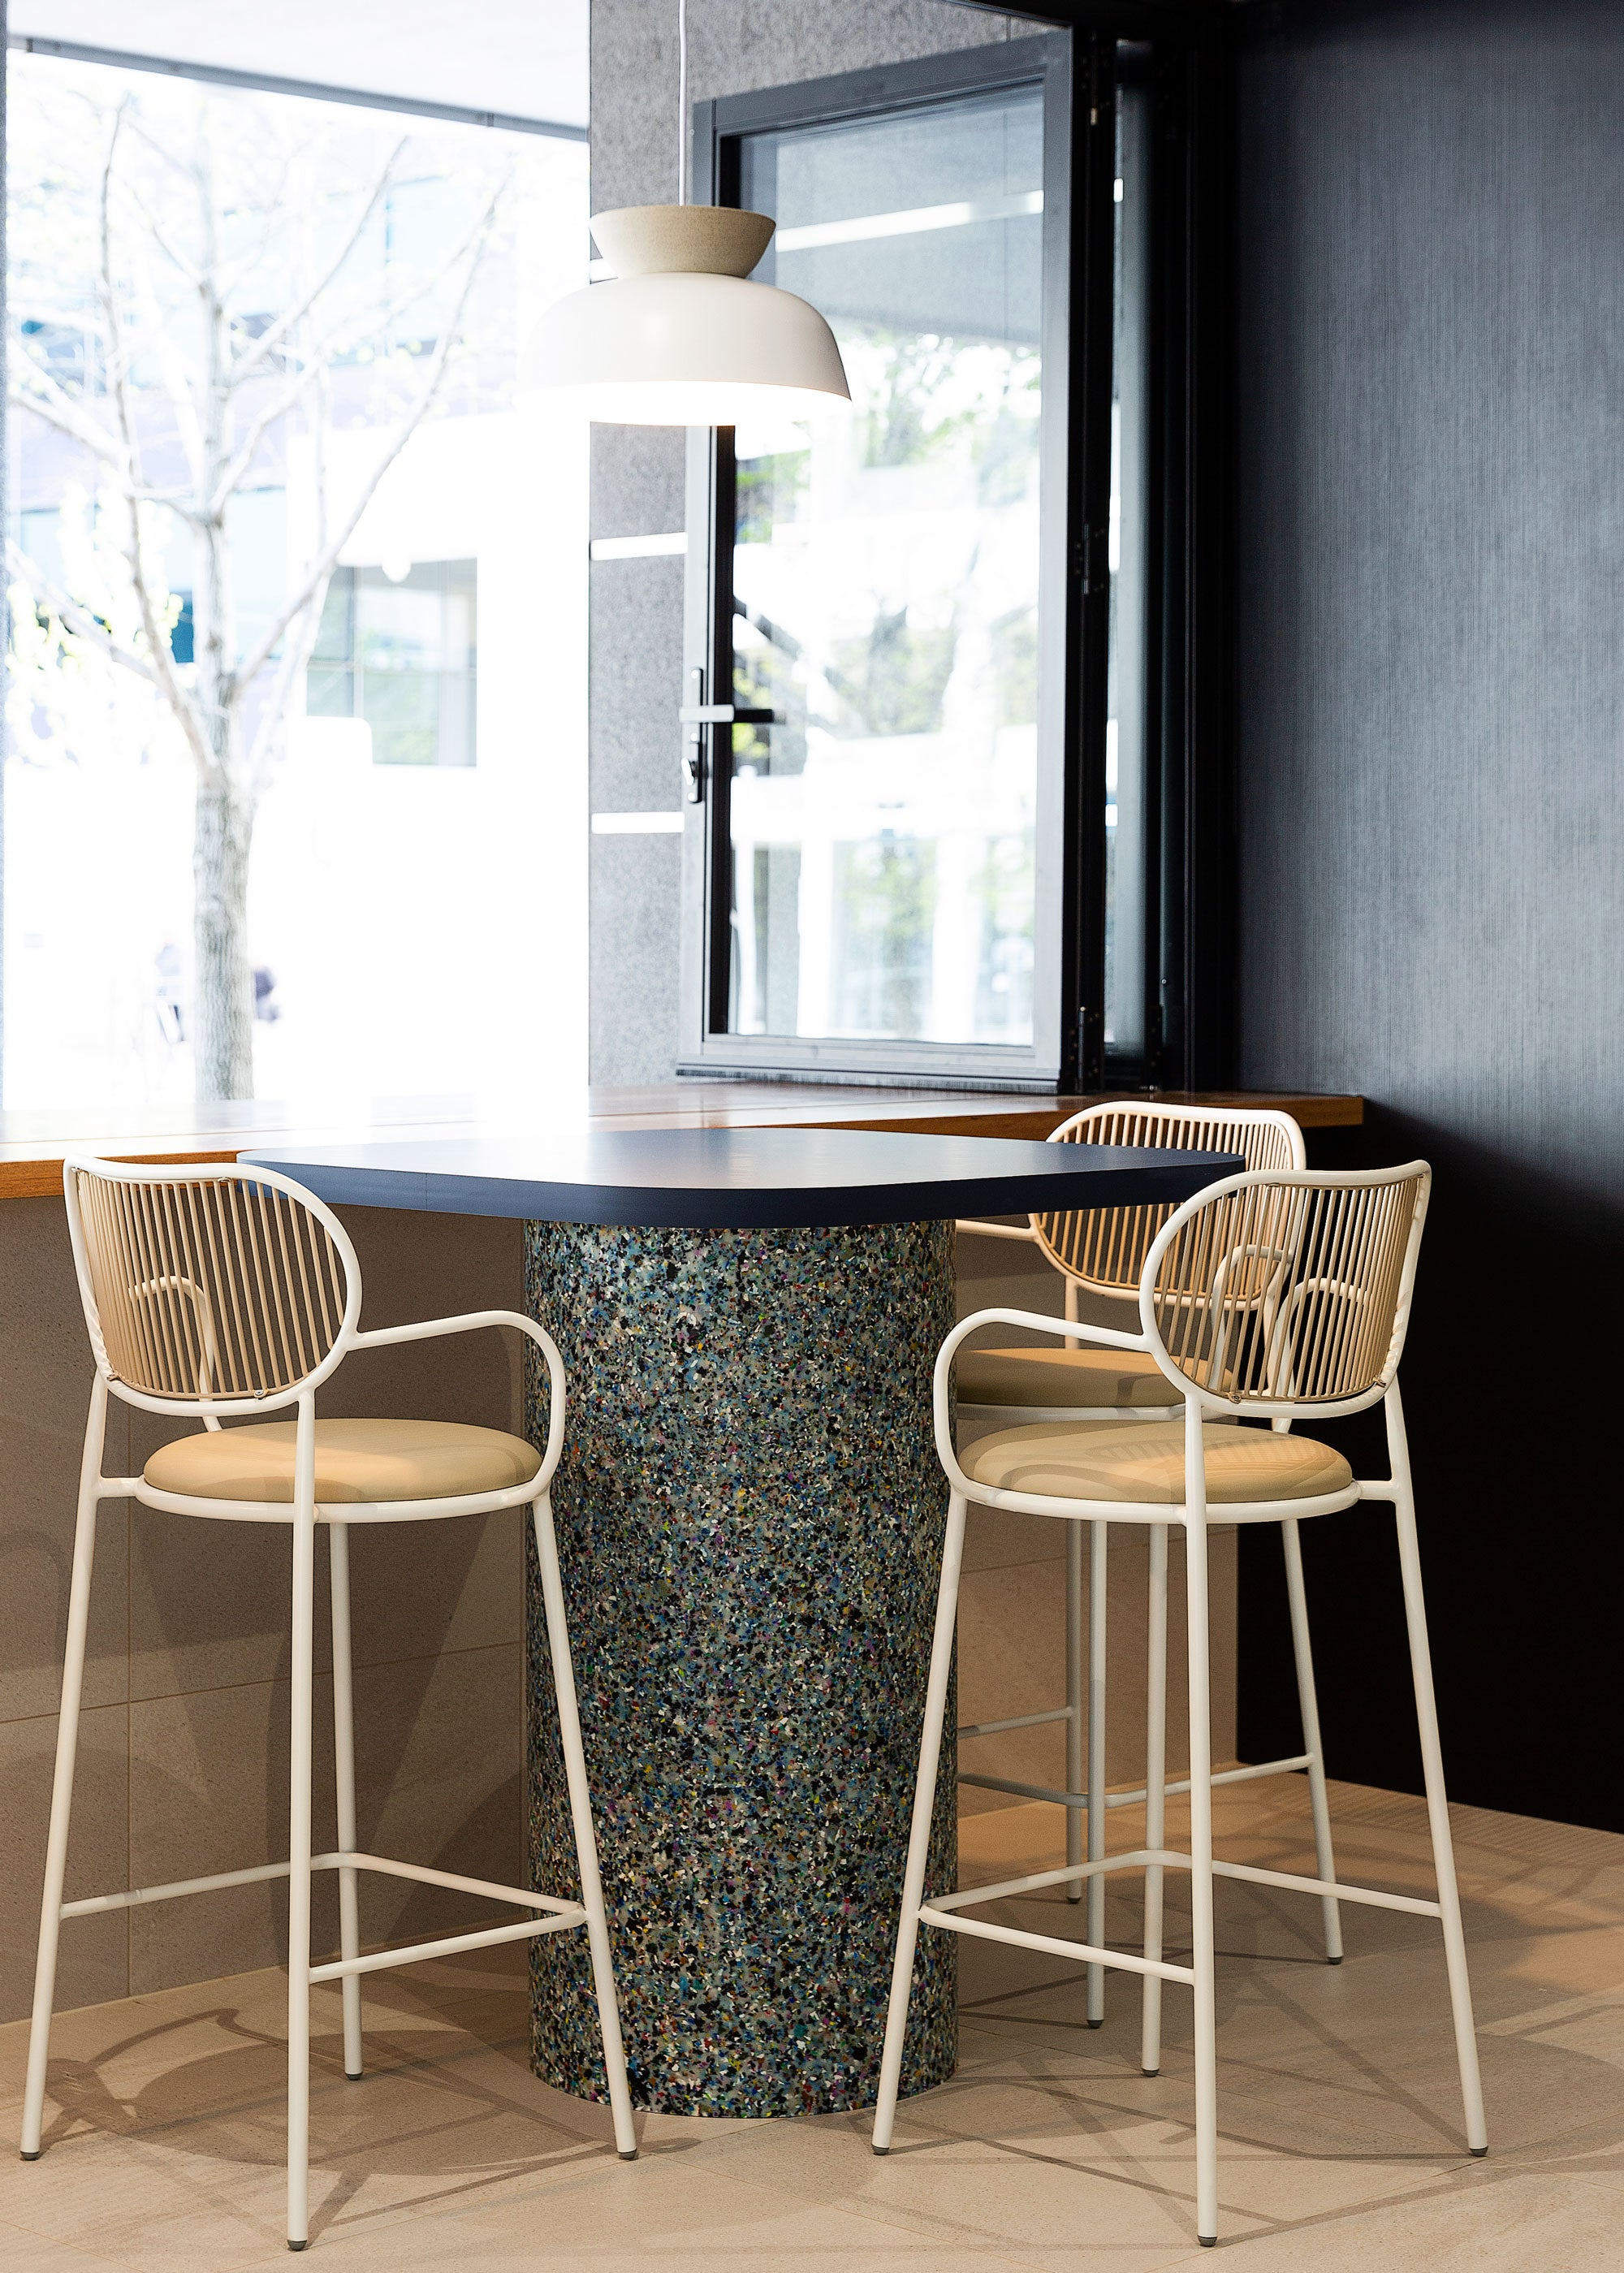 Piper, Bobby and Confetti at 11 Moore St by Davenport Campbell and Intermain | DesignByThem Furniture